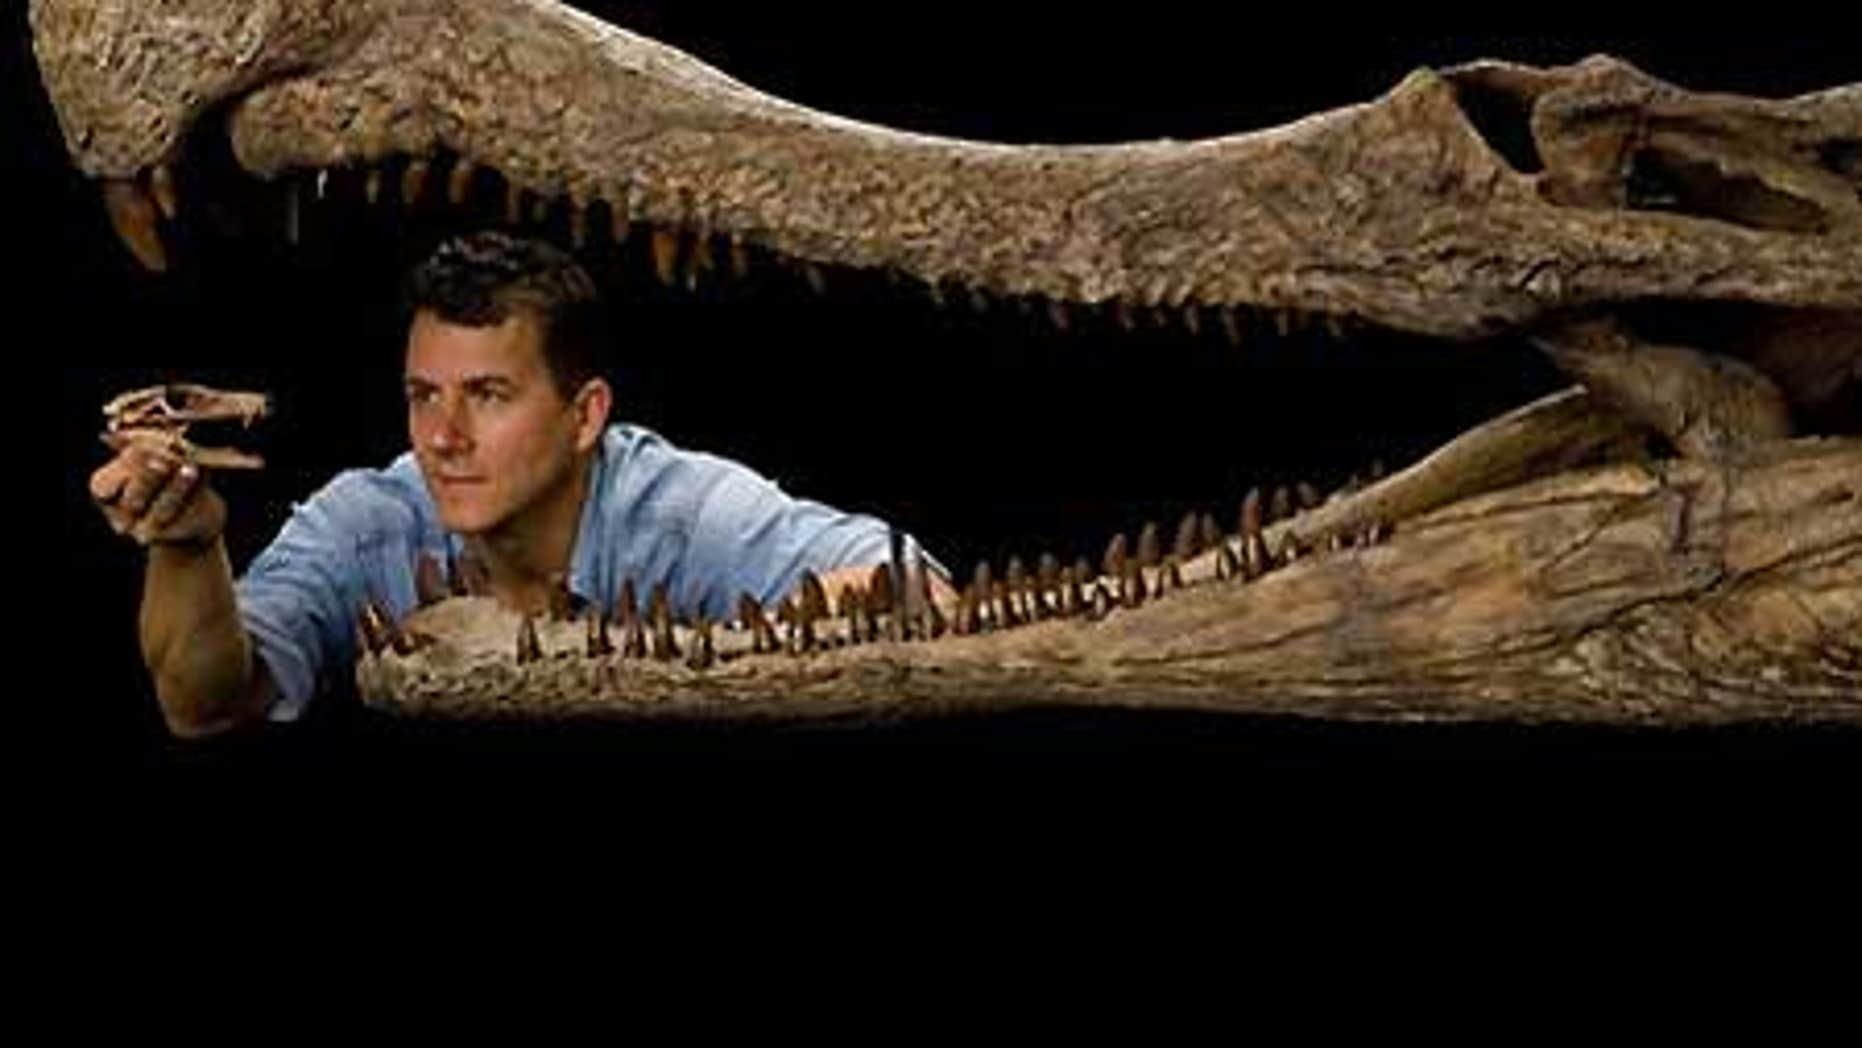 National Geographic Explorer-in-Residence, enveloped by the jaws of SuperCroc, holds the fossil head of DogCroc.